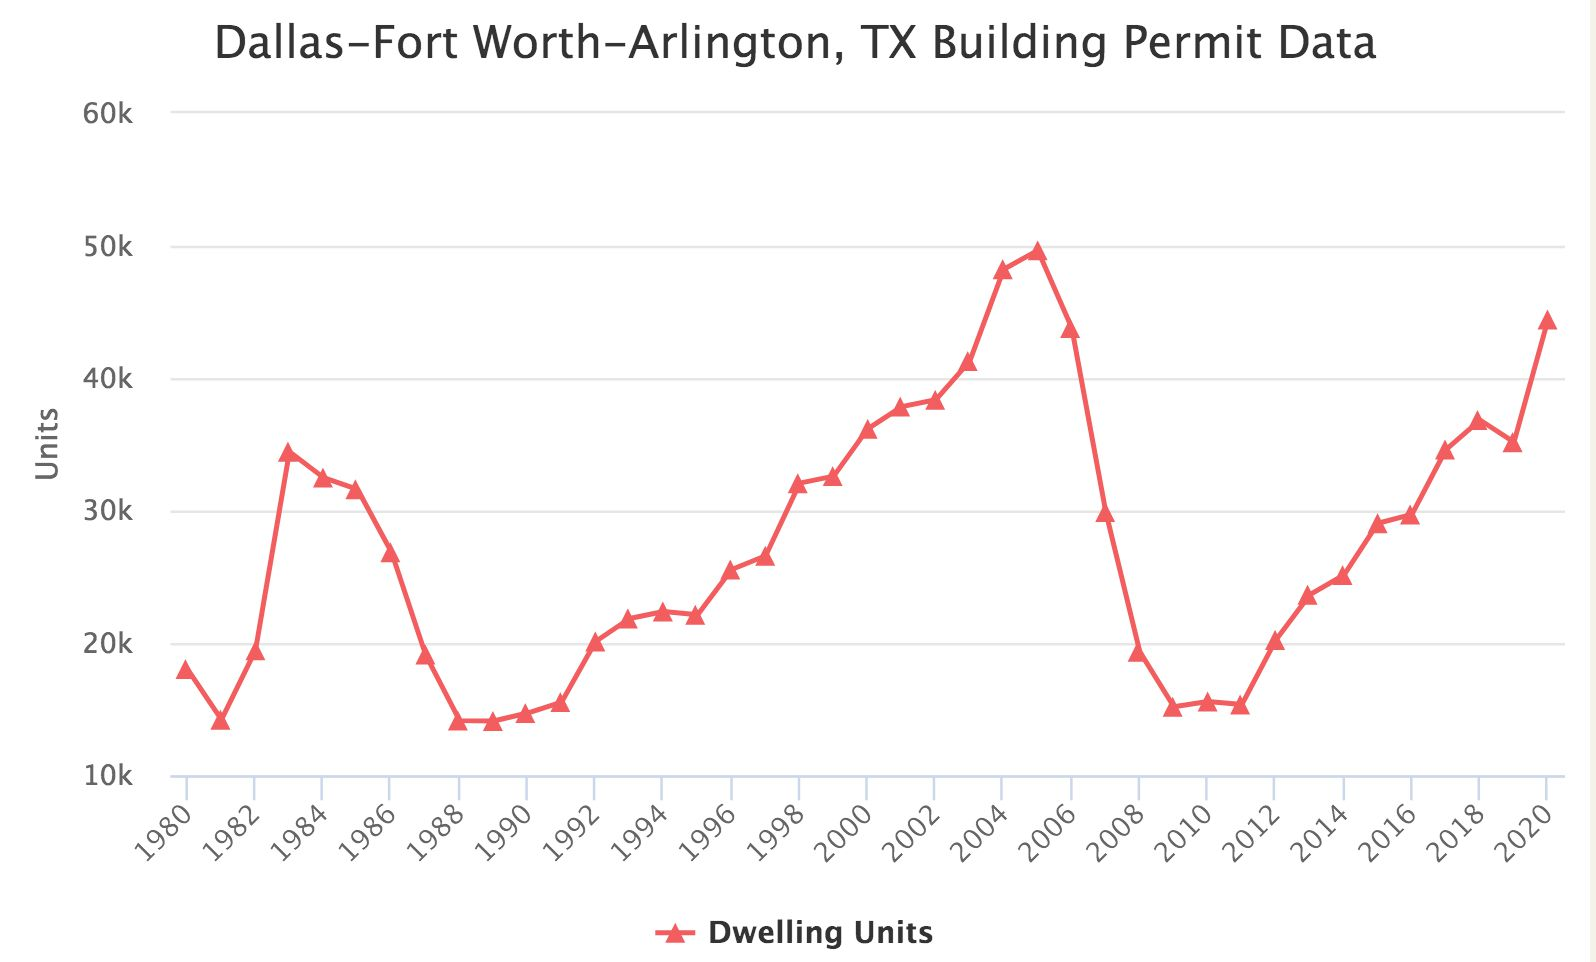 D-FW home construction has steadily increases in the last decade.